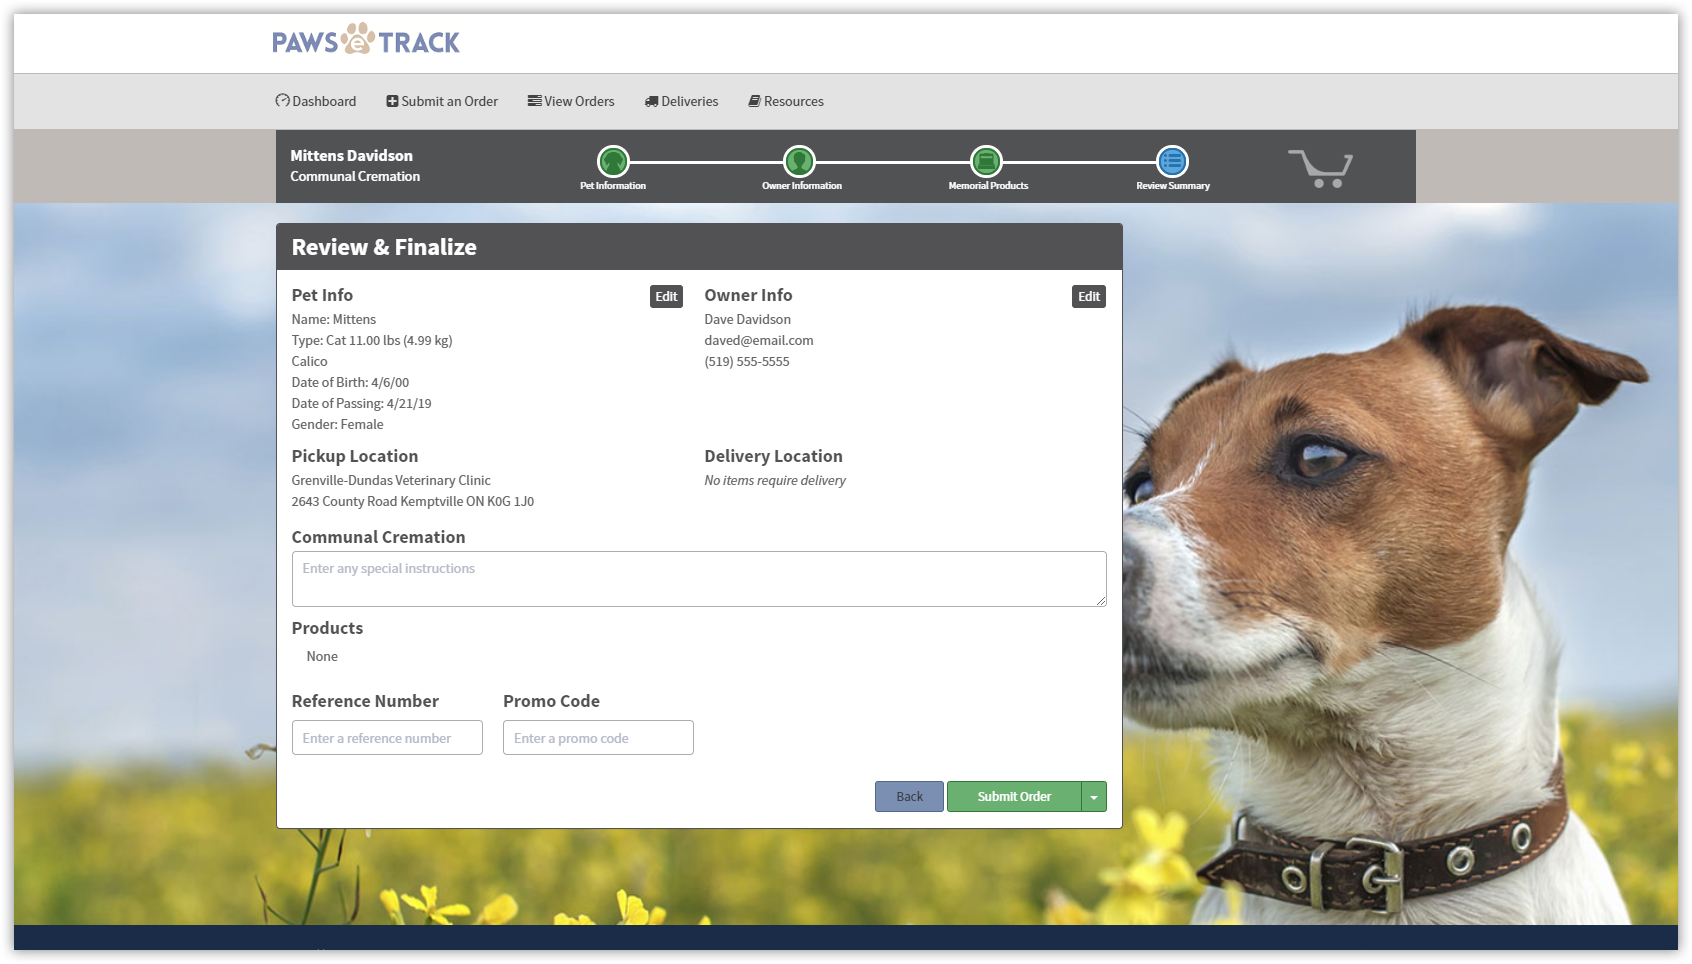 """5 - REVIEW & FINALIZE - The review page gives you a summary of the entire order including pet and owner info, cremation type, products and memorial items.To save an order, select """"Save & Hold""""You can remove the hold once you are ready to have the pet picked up."""